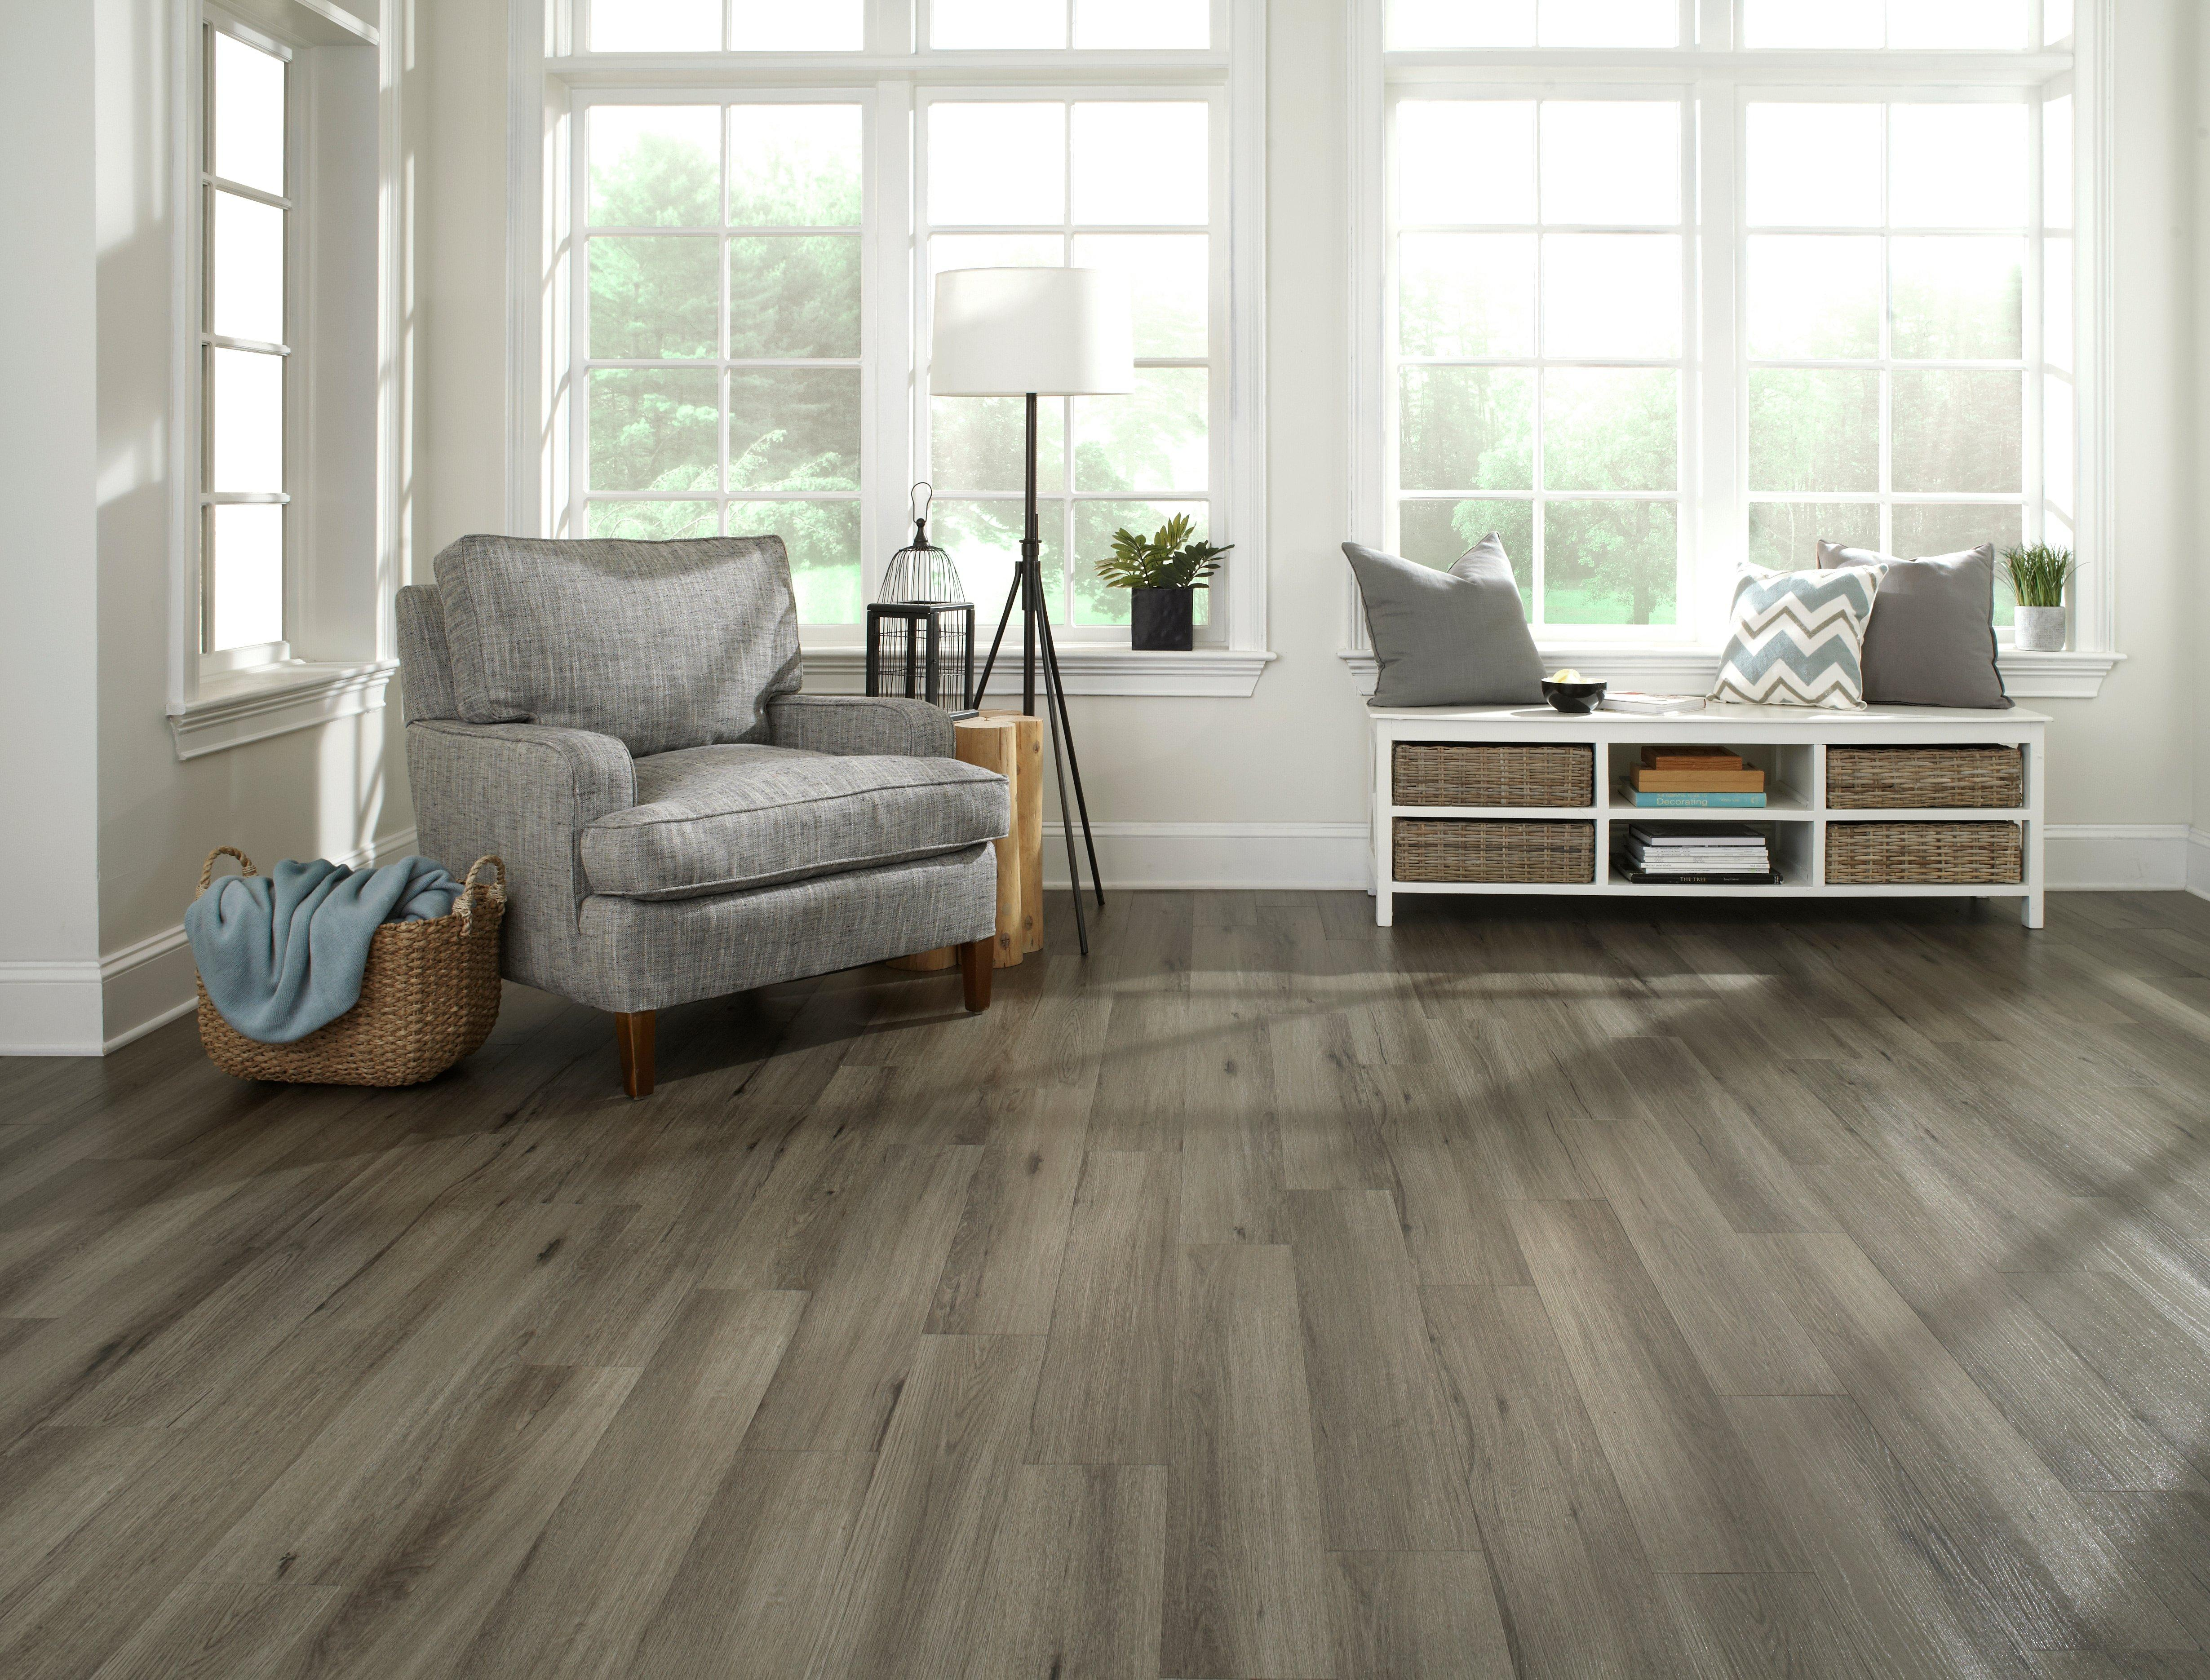 Your floors should meet the needs of your lifestyle, but also reflect your  personal style! Read on to find out the best flooring options for your  lifestyle.